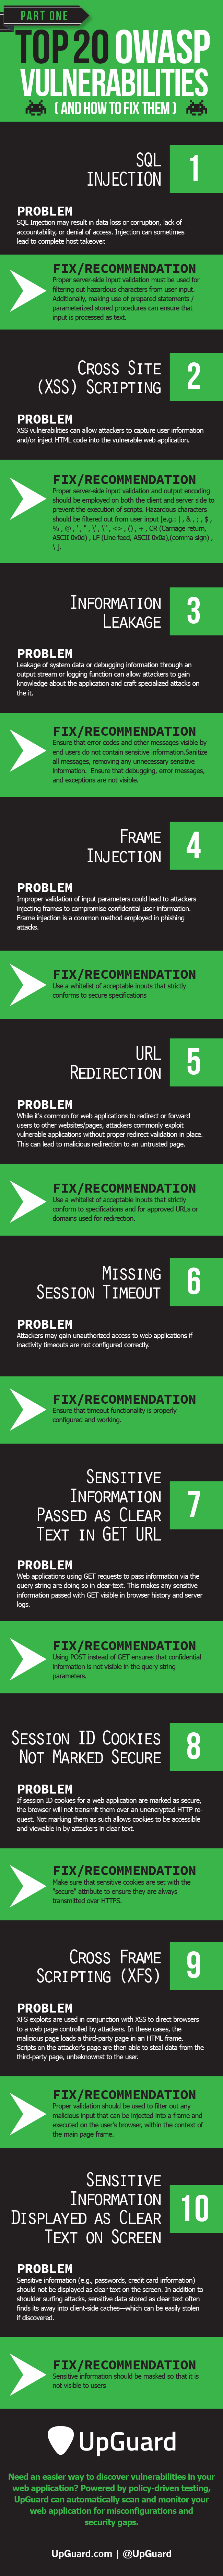 Top 20 OWASP Vulnerabilities And How To Fix Them Infographic